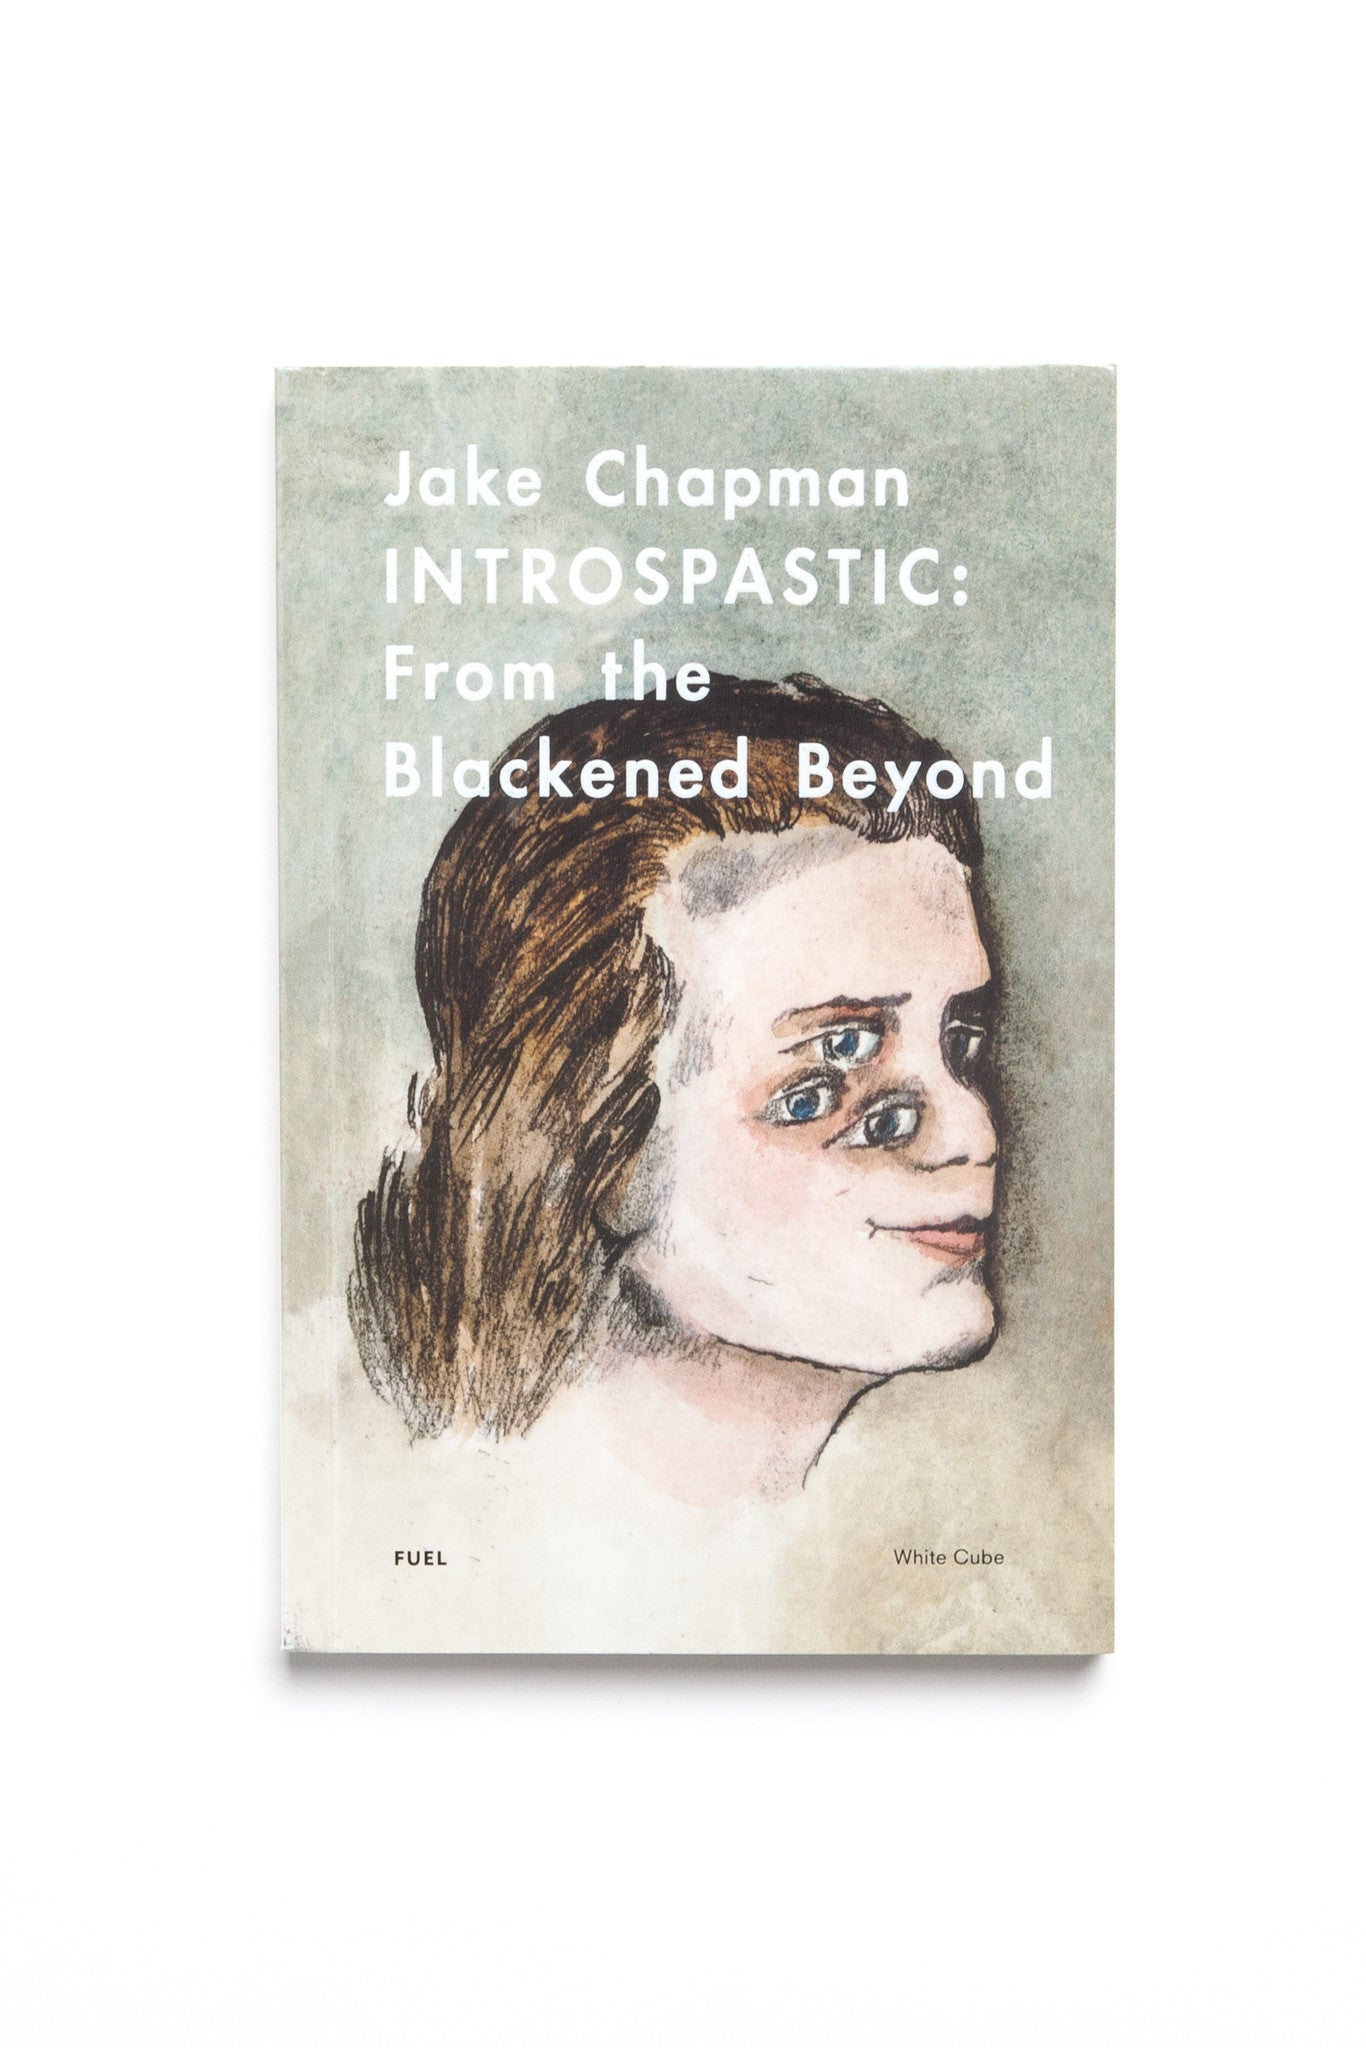 INTROSPASTIC: From the Blackened Beyond - Jake Chapman